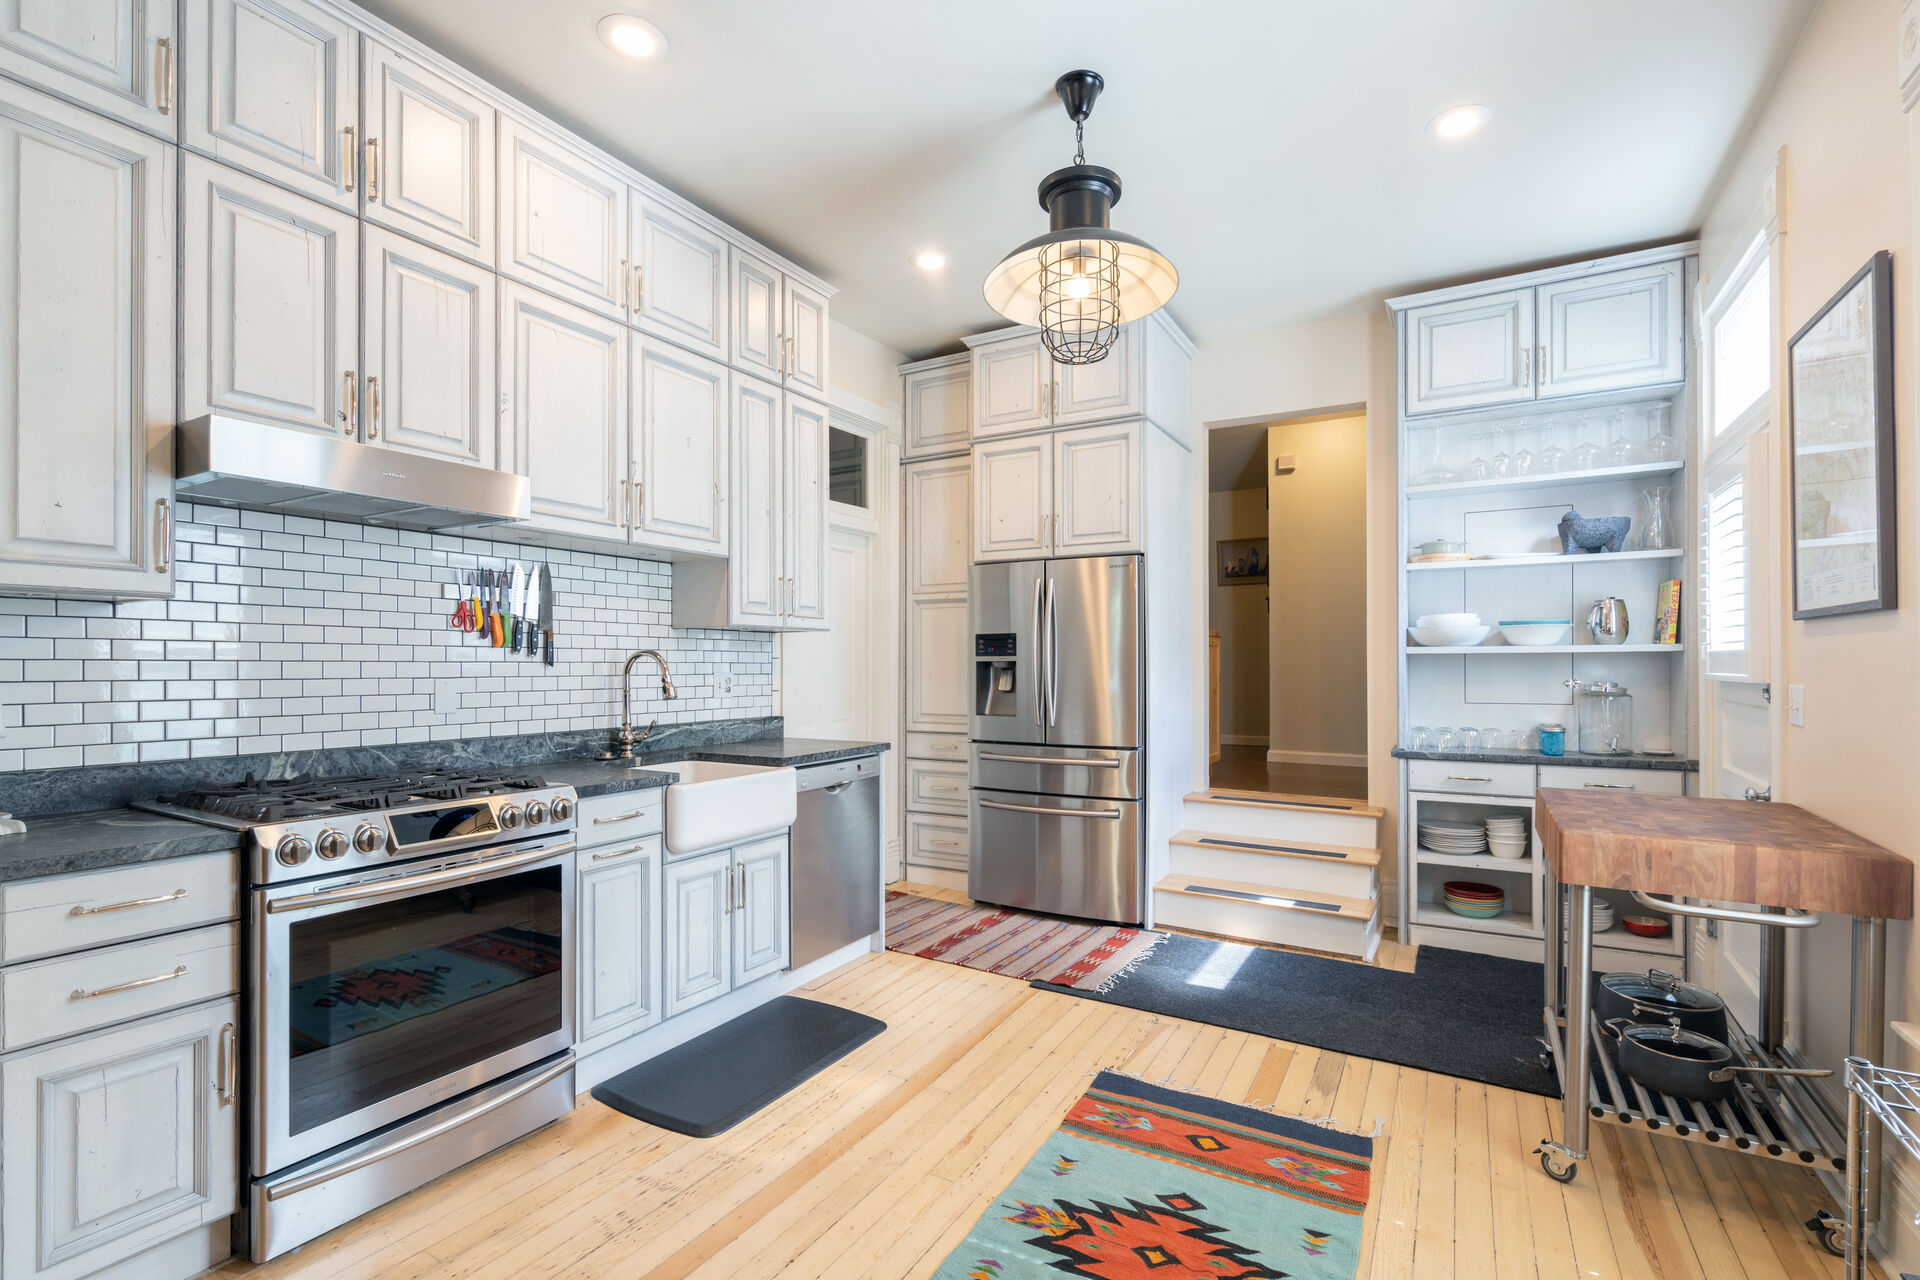 The kitchen of this holiday home in Telluride, with stainless steel appliances and a mobile kitchen counter table.